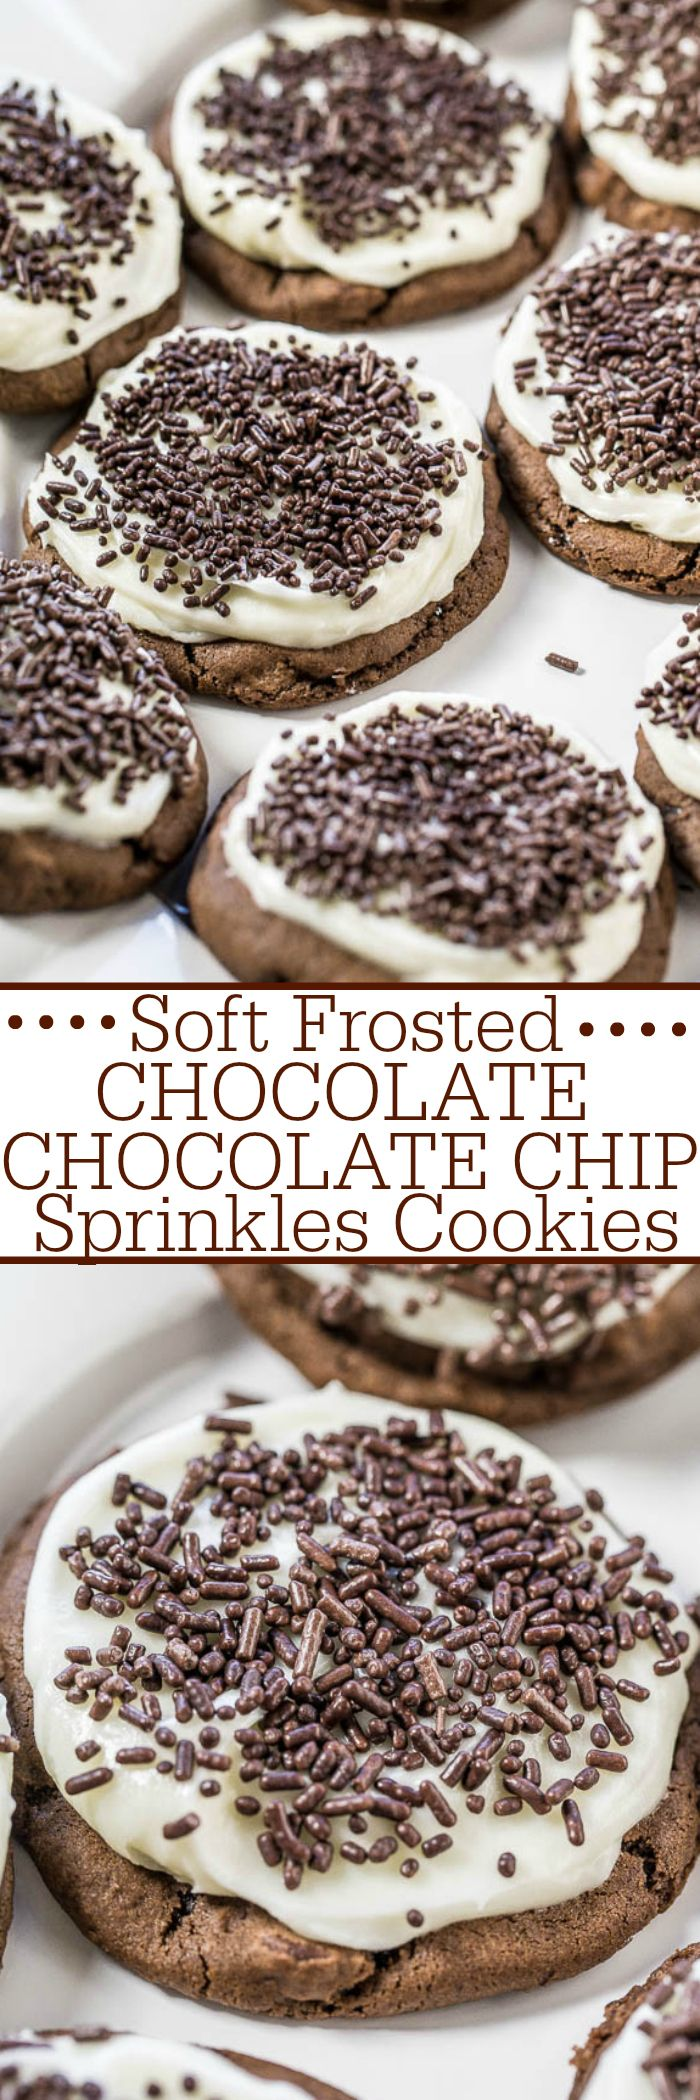 Soft Frosted Chocolate-Chocolate Chip Sprinkles Cookies - Soft, chewy, very chocolaty cookies topped with tangy cream cheese frosting!! A match made in heaven! And everything's better with sprinkles!! #ChristmasCookies